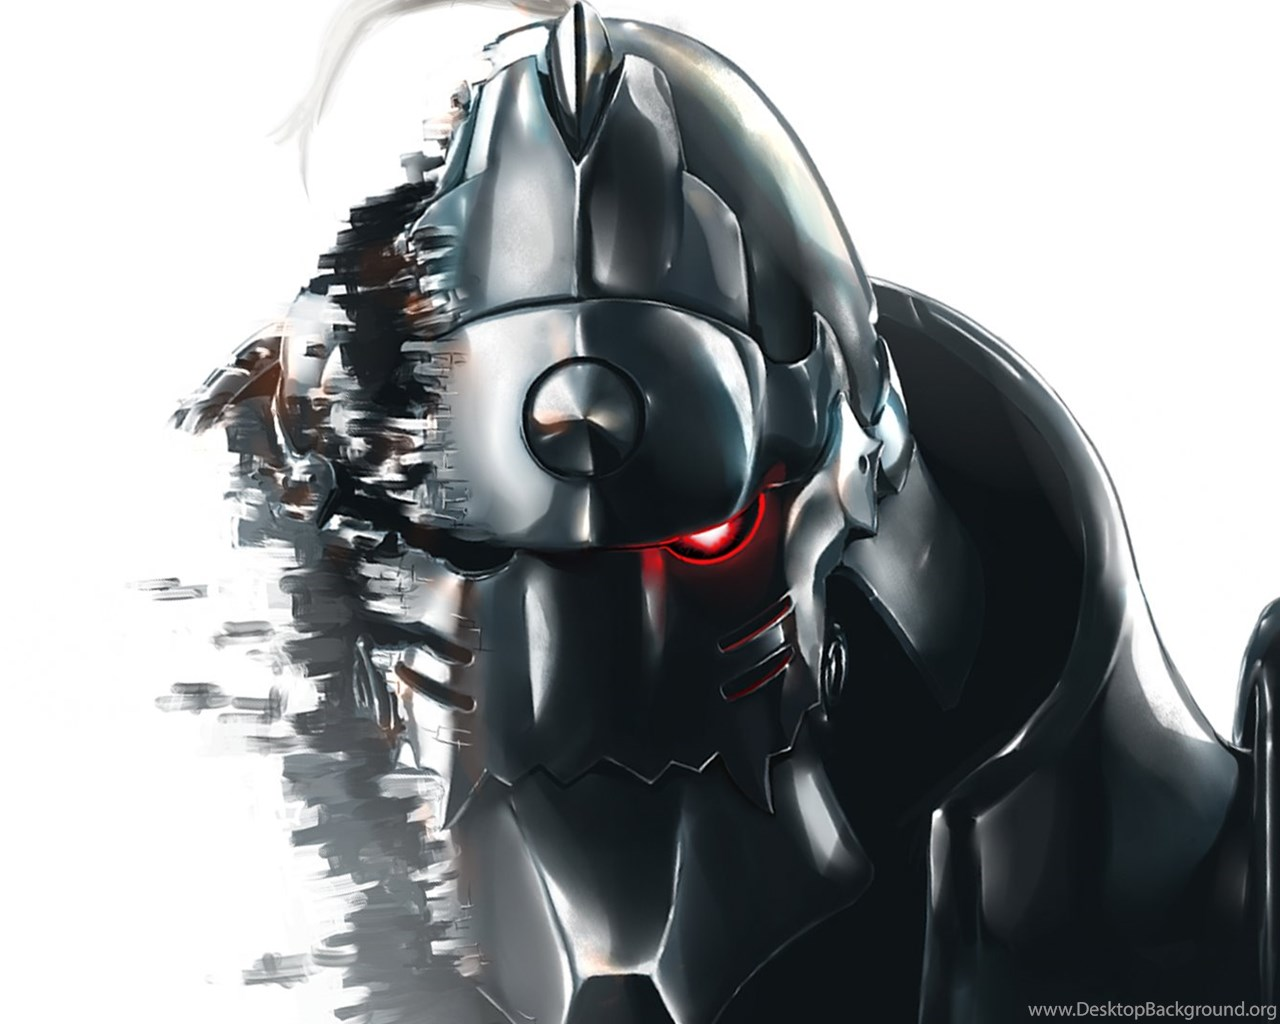 Fullmetal alchemist anime wallpapers hd desktop background - Anime hd wallpapers for pc ...